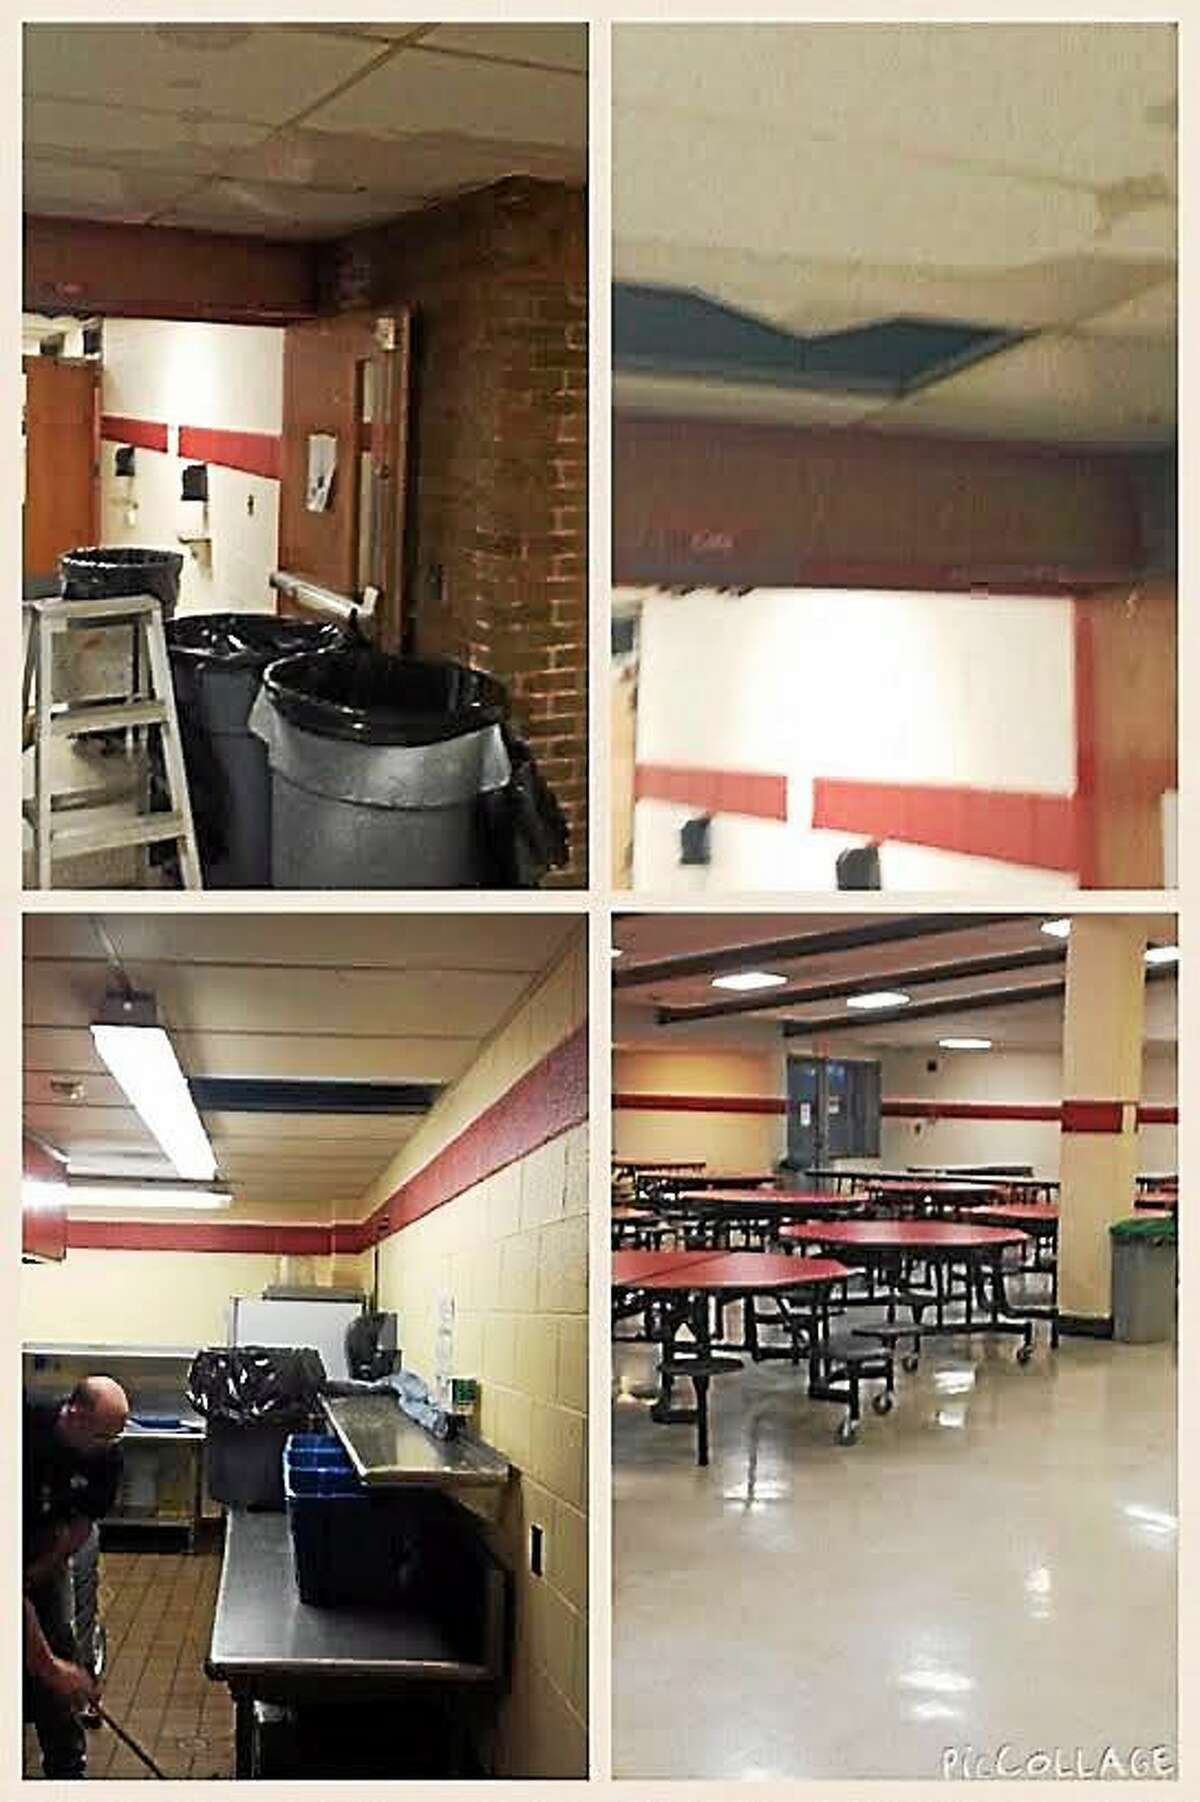 The aftermath of the roof leak at Derby High School. Contributed photo — Jim Gildea